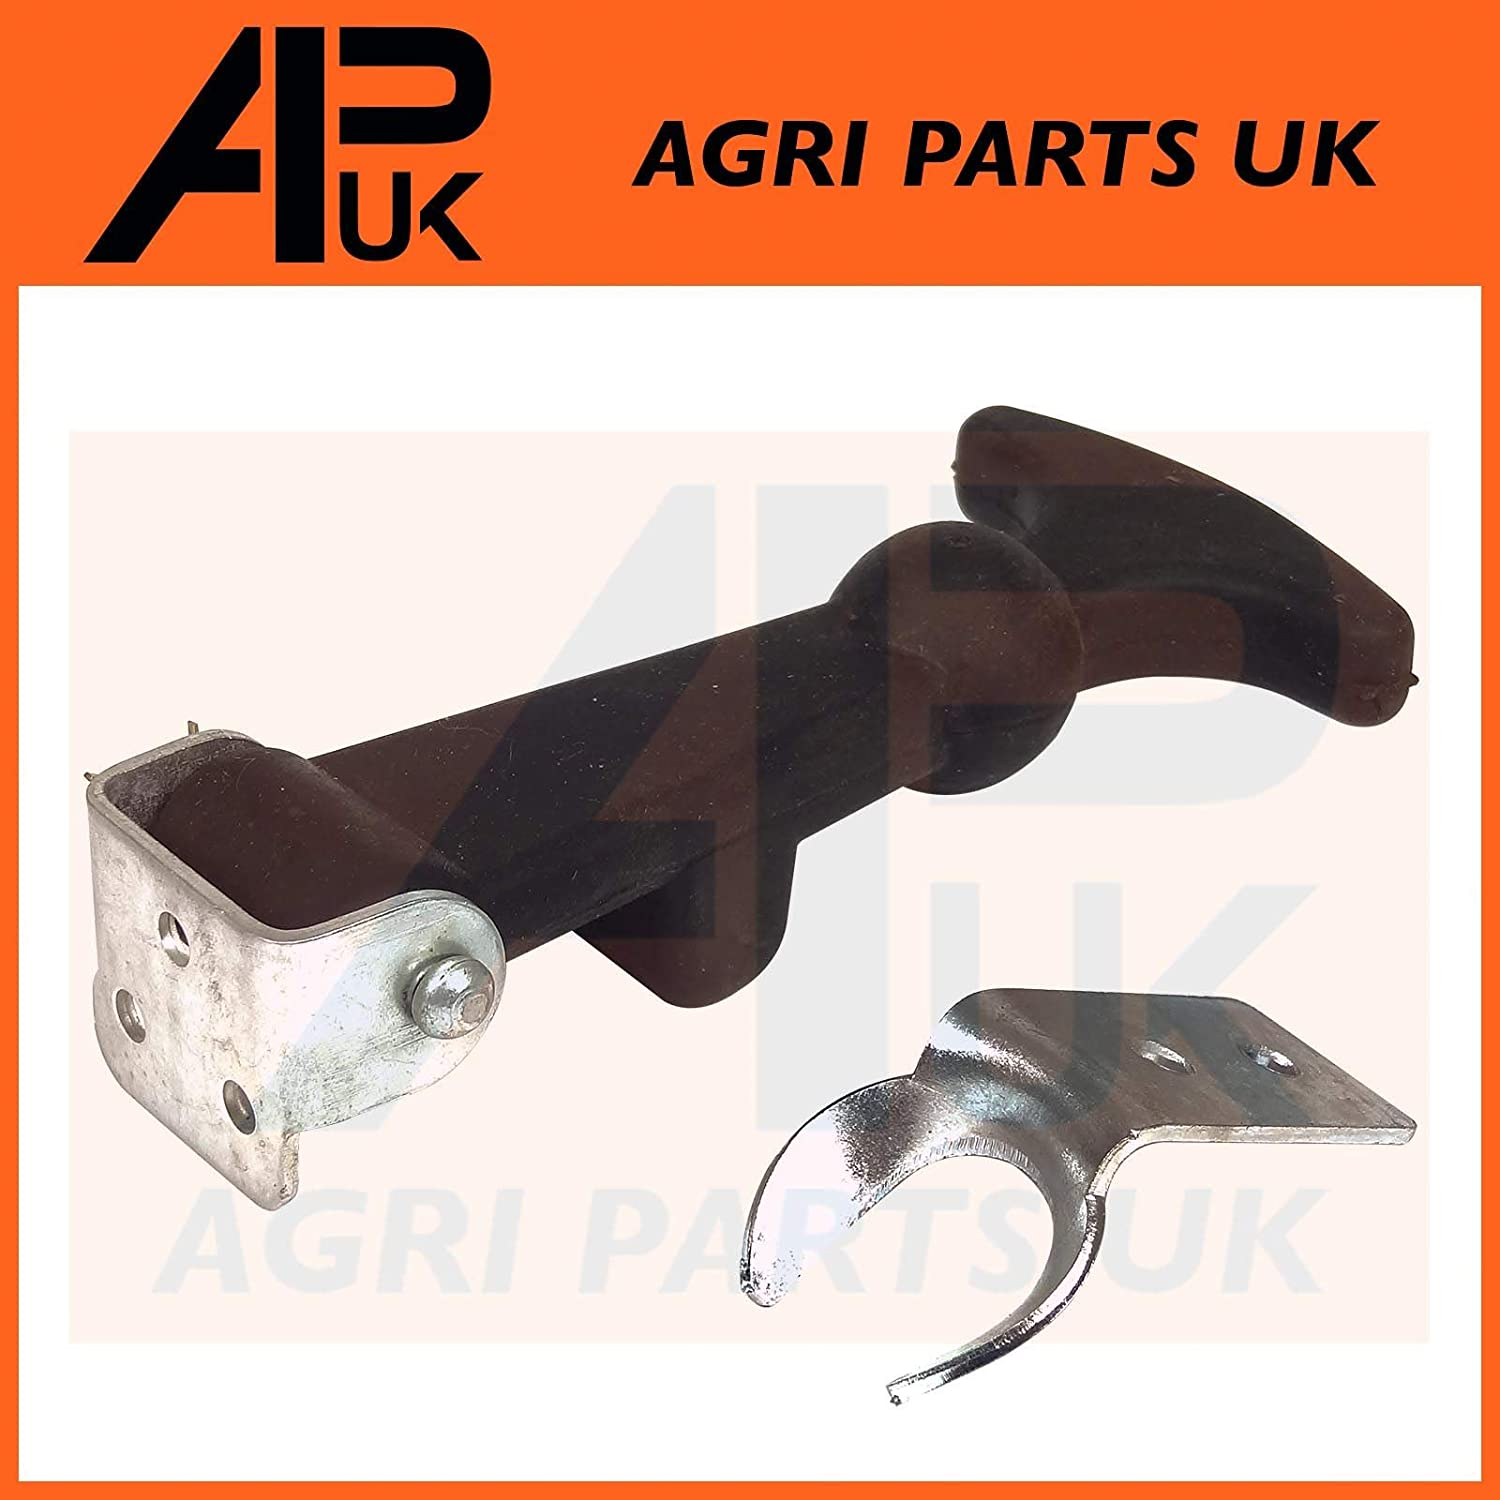 APUK 10x Rubber Bonnet Boot Fastener Catch Pull Strap Pannel Hook Tractor Lorry Boat